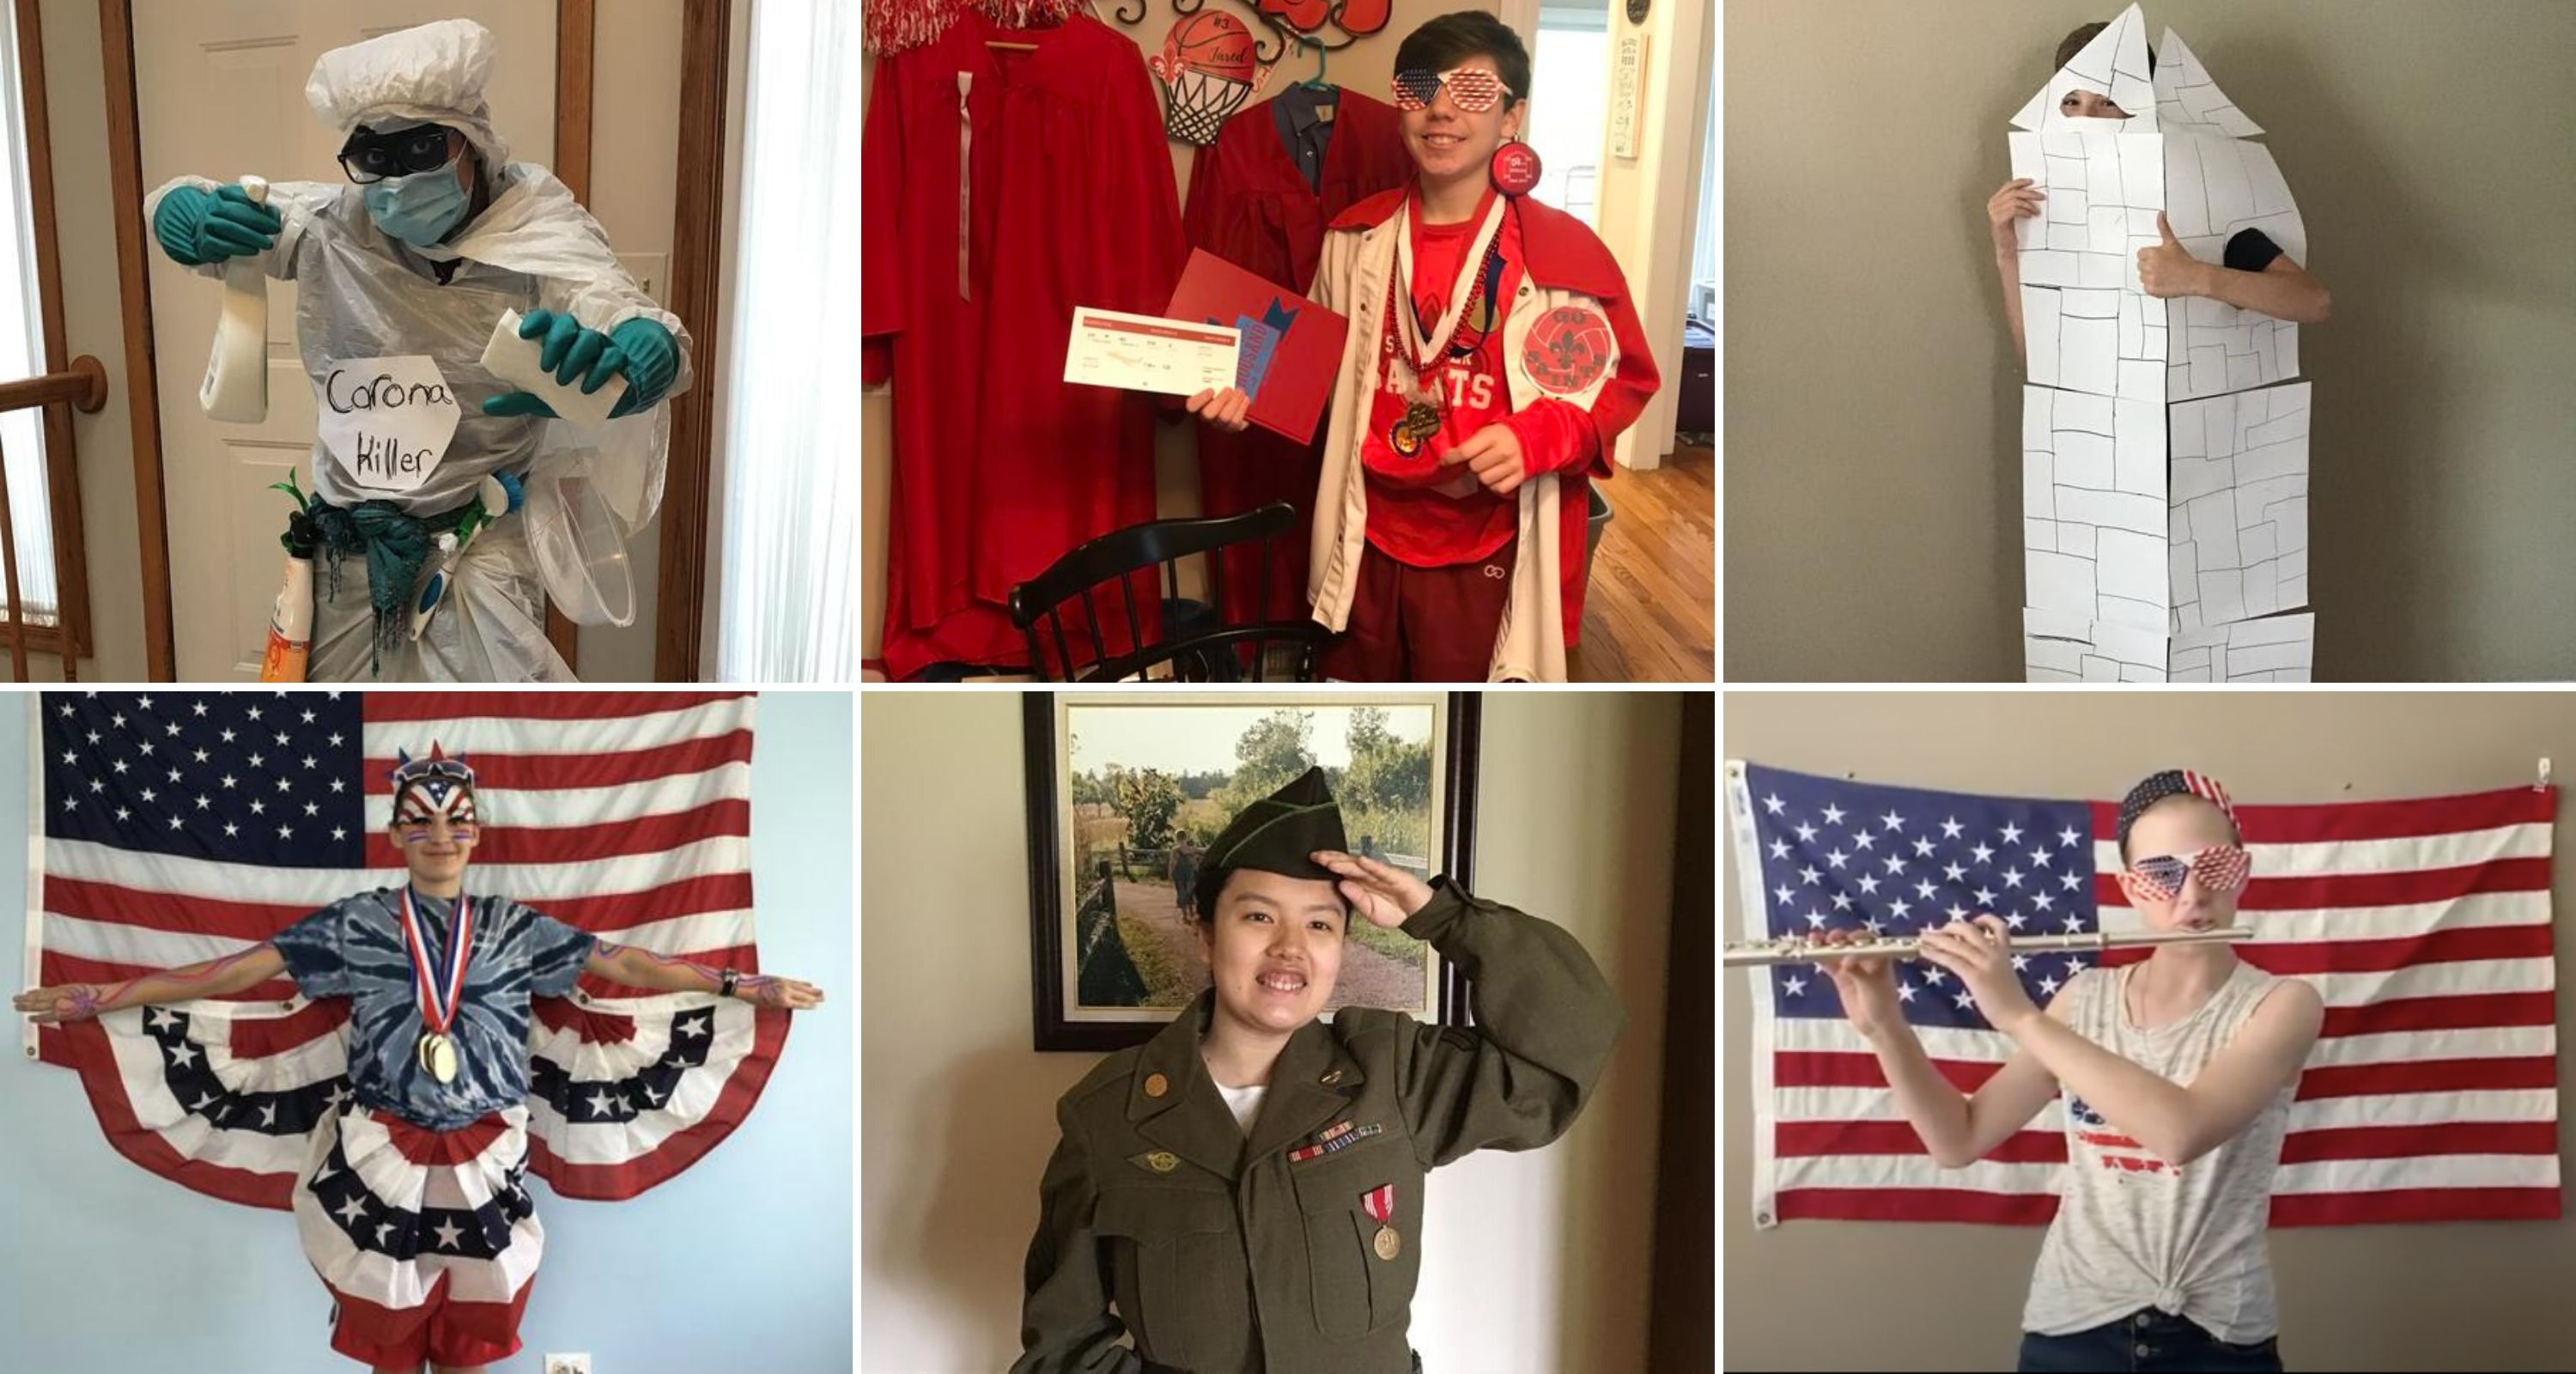 Collage of photos of students in themed outfits